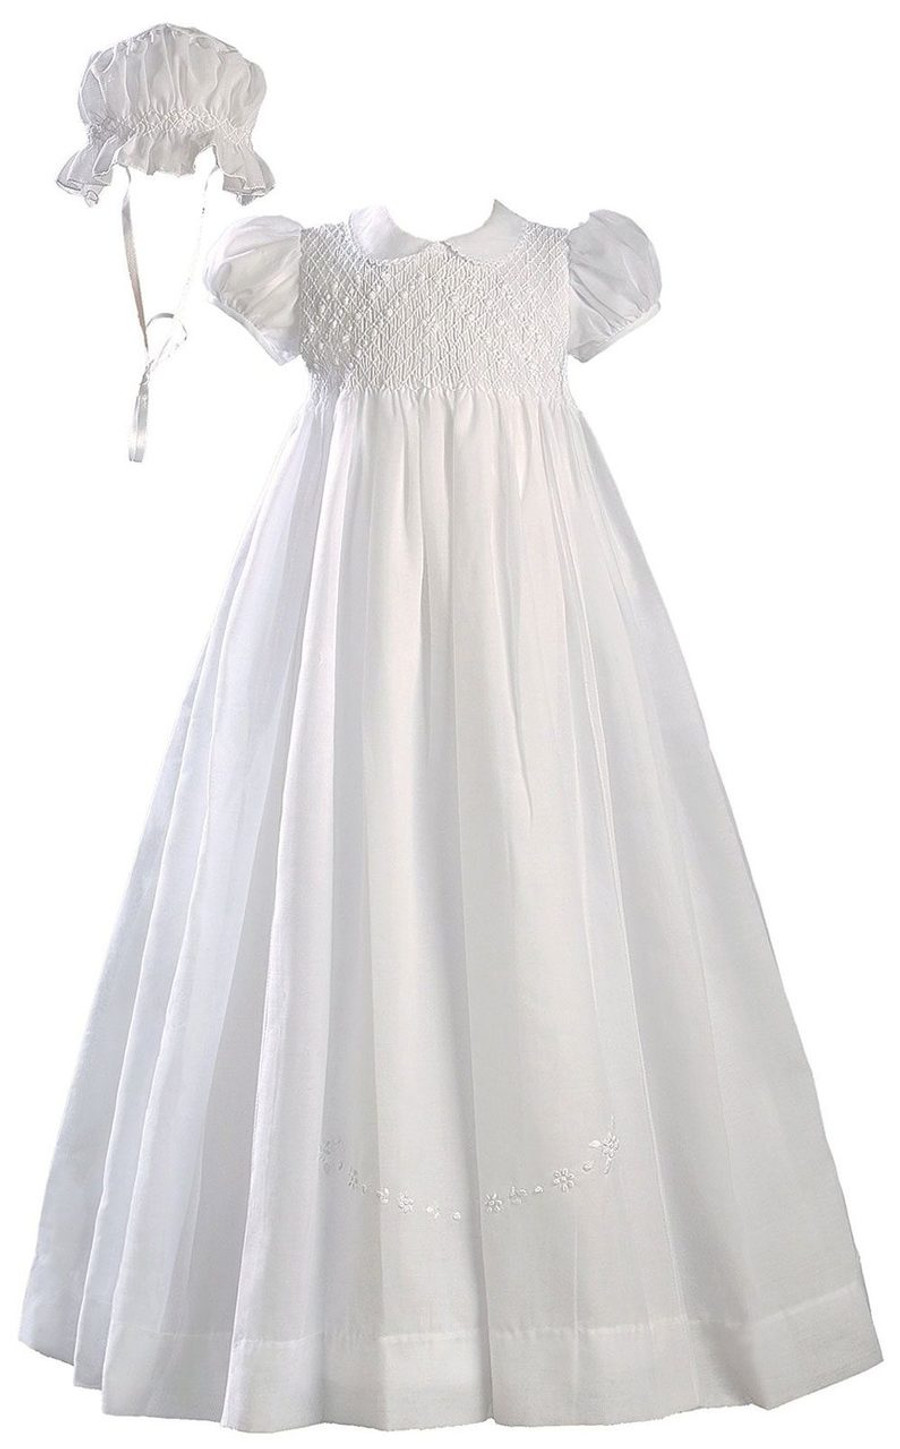 a1c8cd987 Hand Smocked Polycotton Batiste Christening Baptism Gown